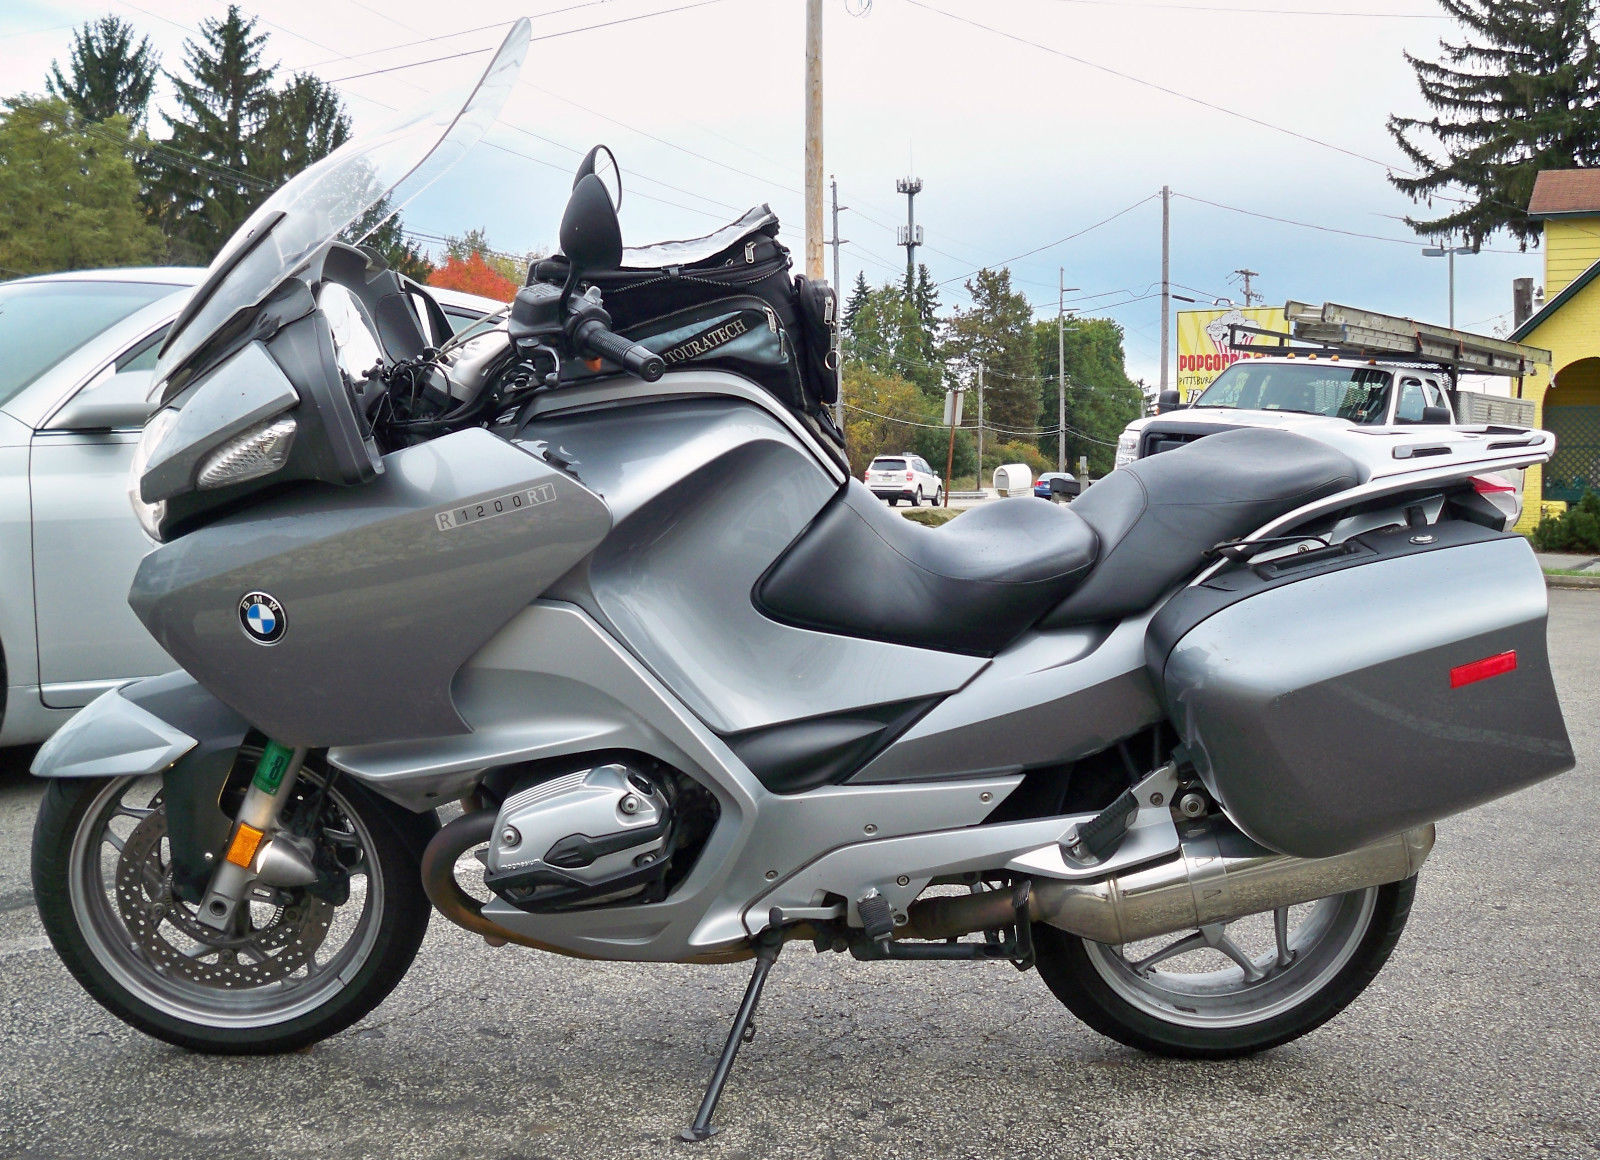 Bmw r1200rt images